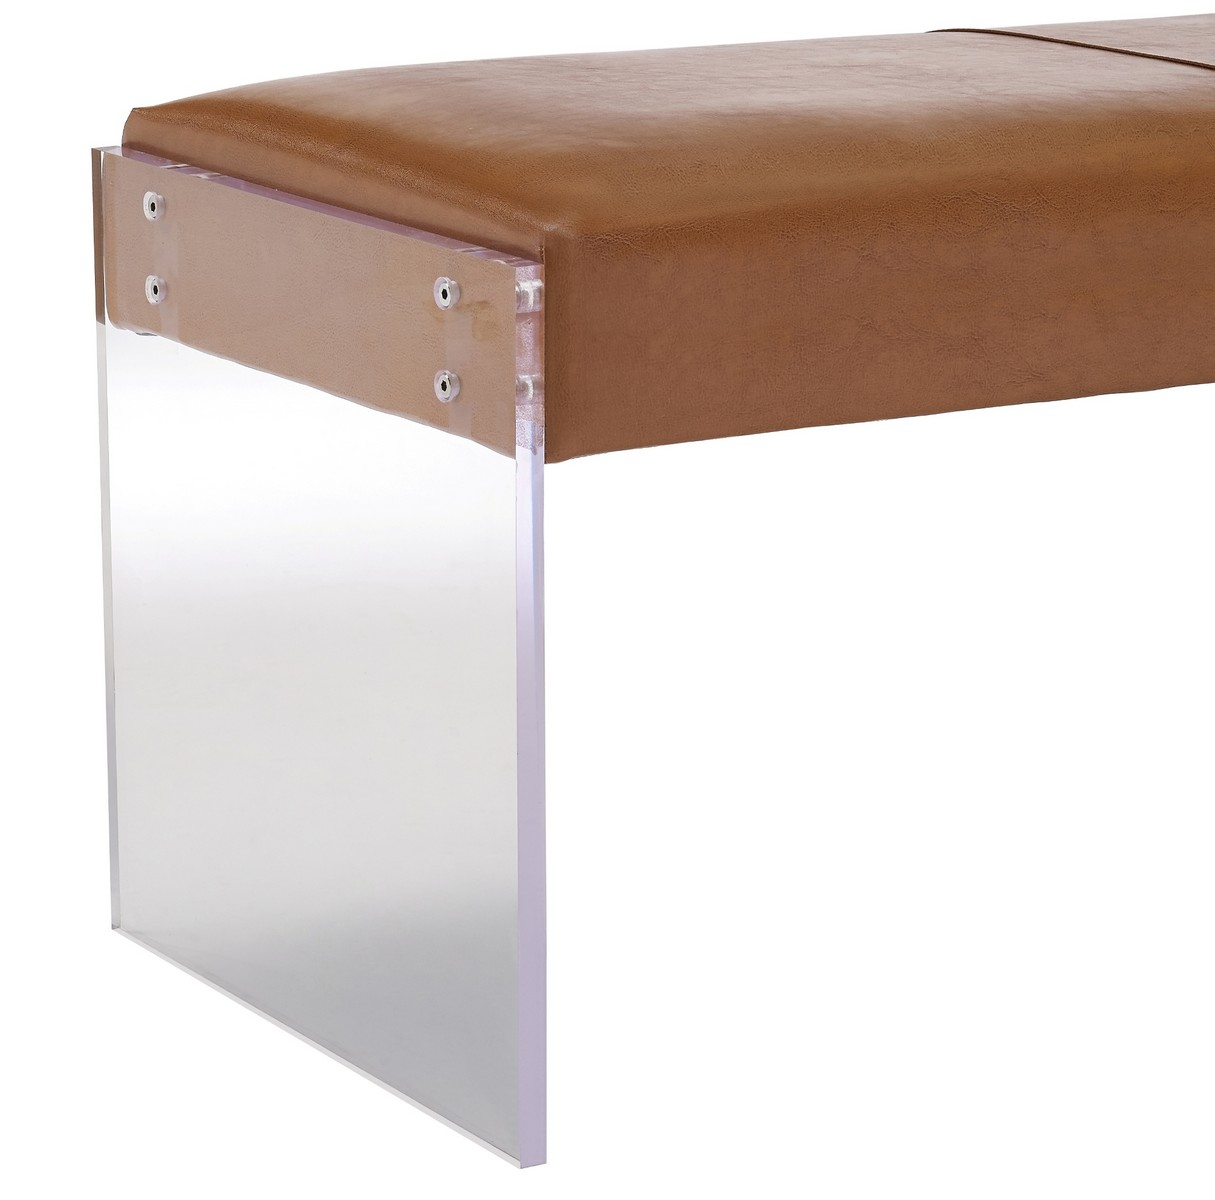 TOV Furniture Envy Leather/Acrylic Bench